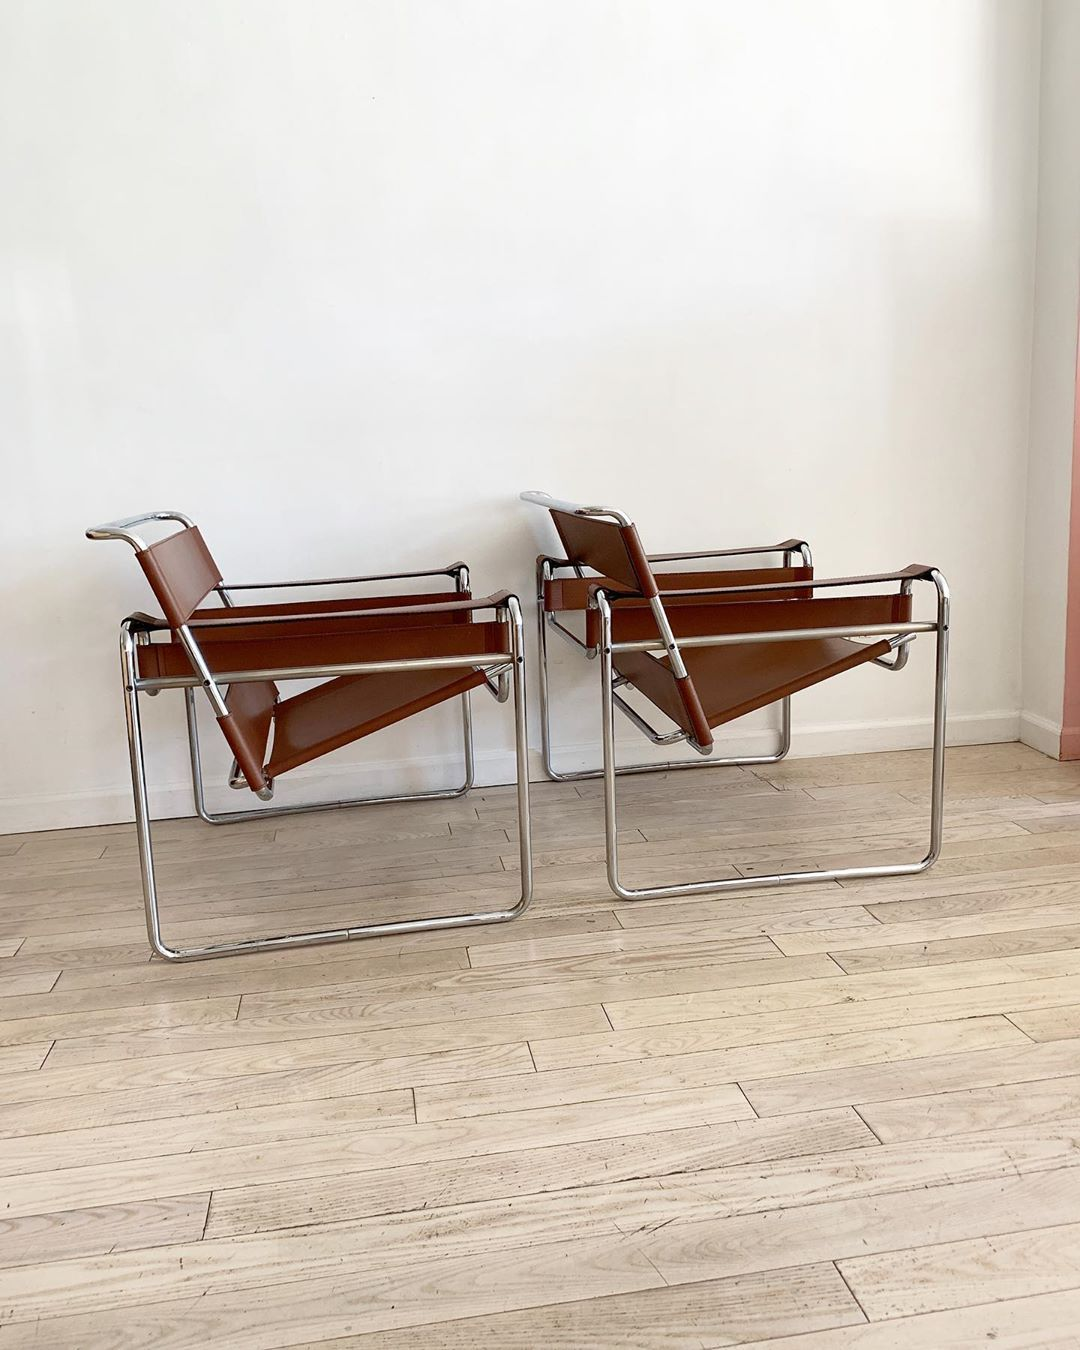 1970s brown leather Wassily chairs designed by Marcel